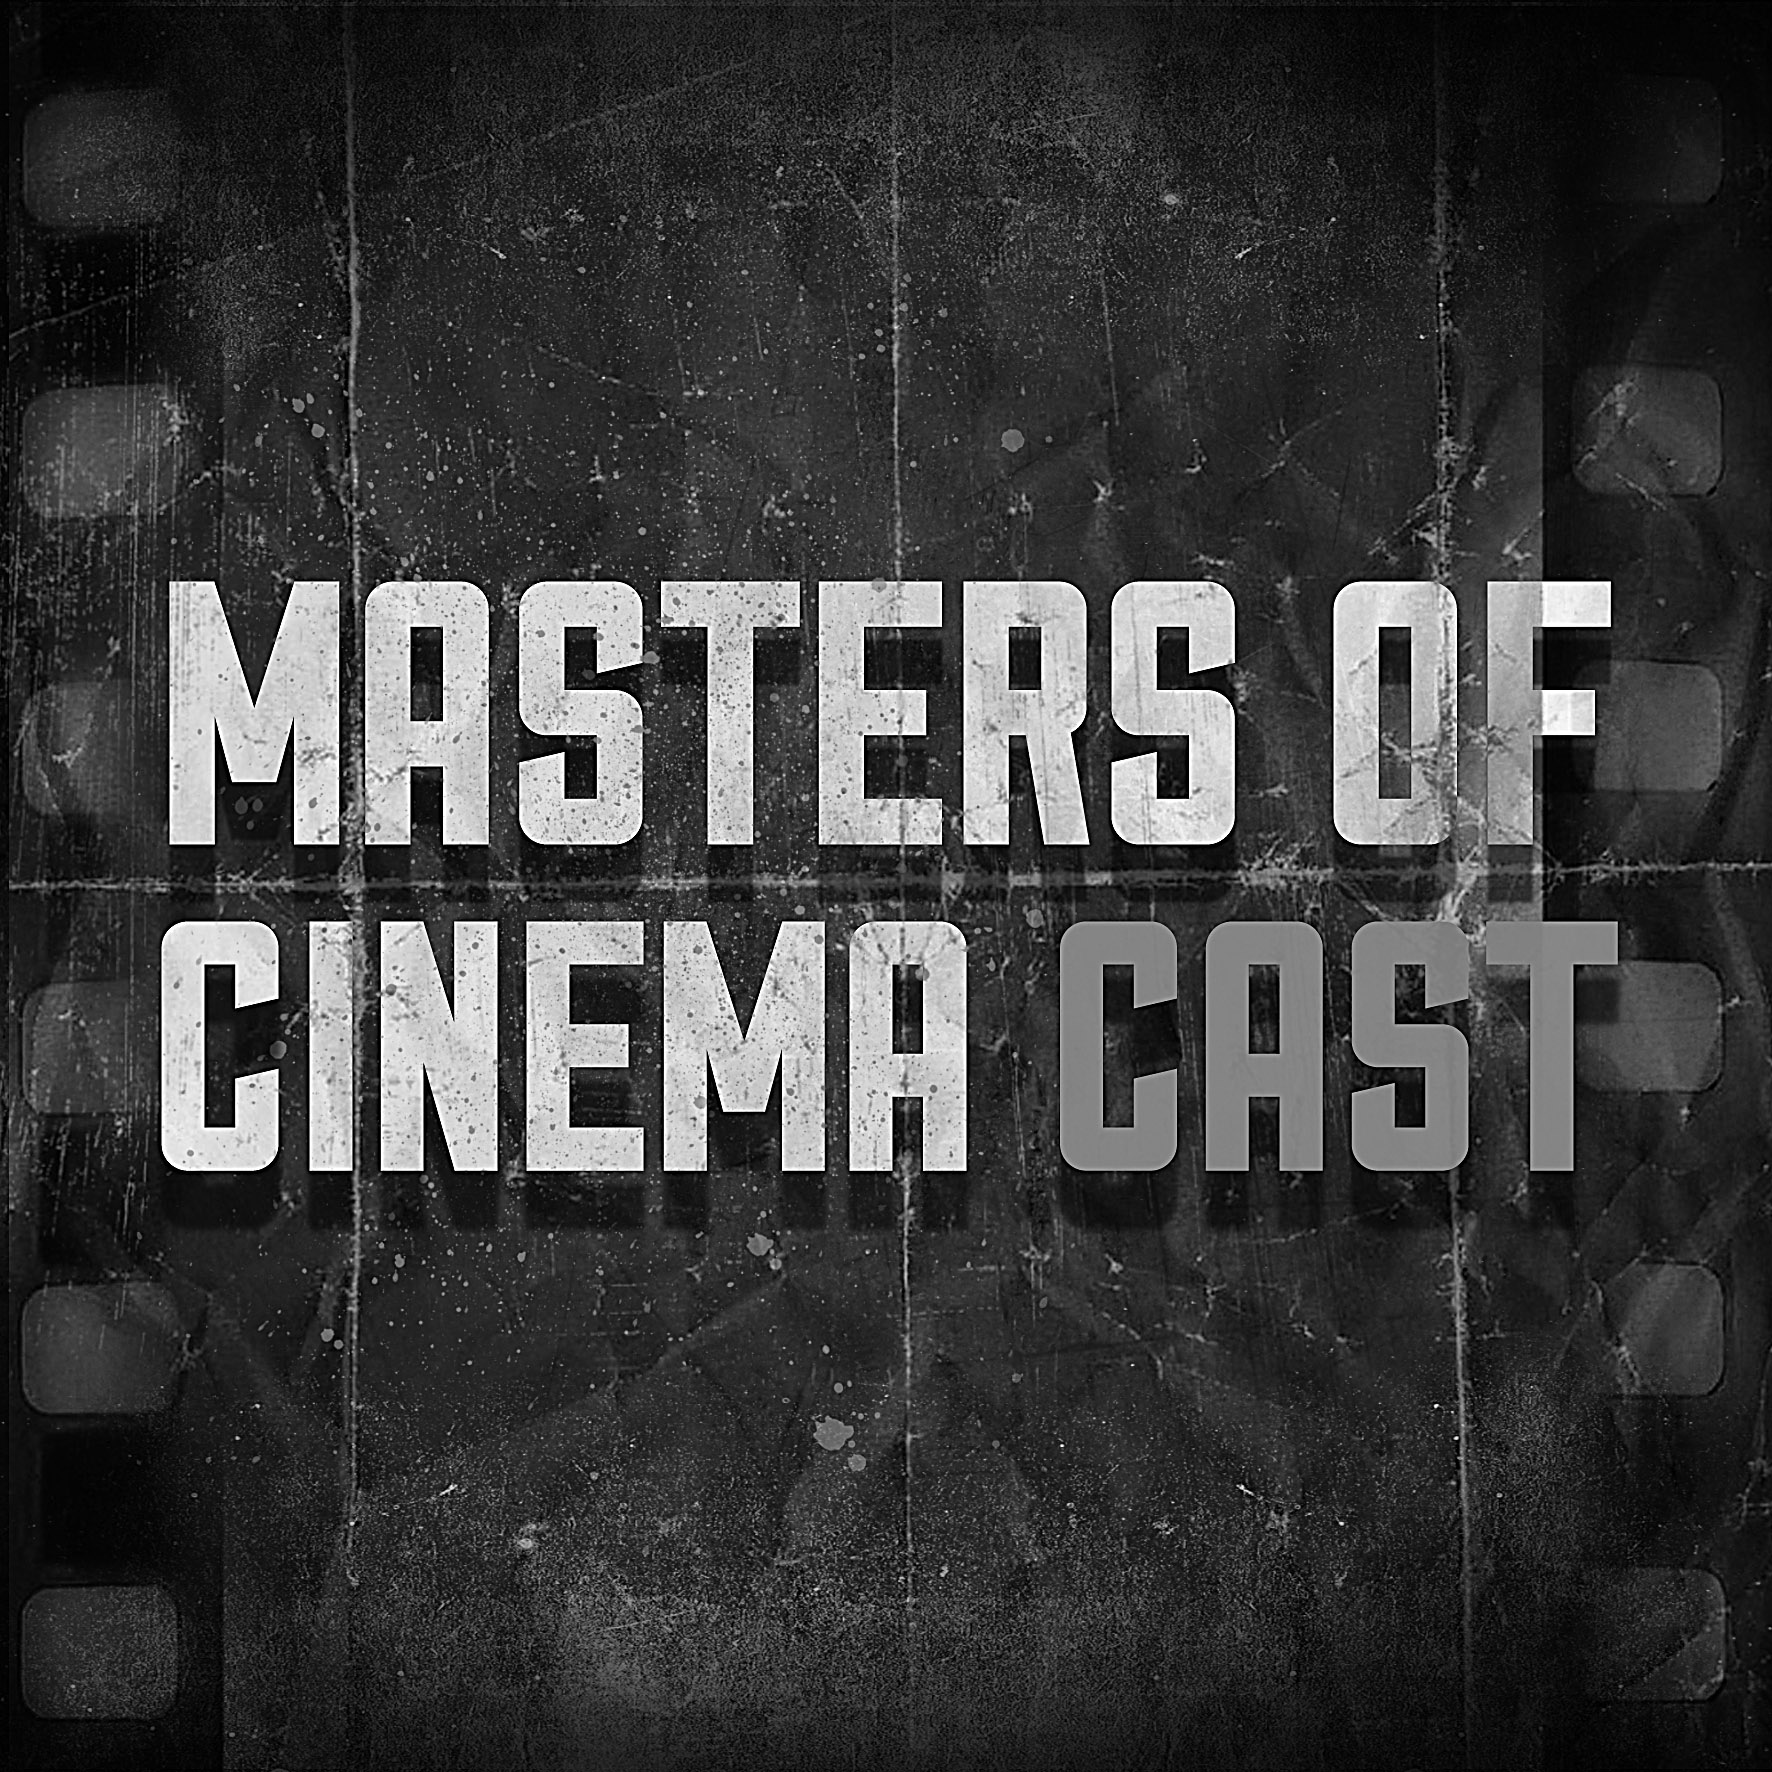 Masters of Cinema Cast